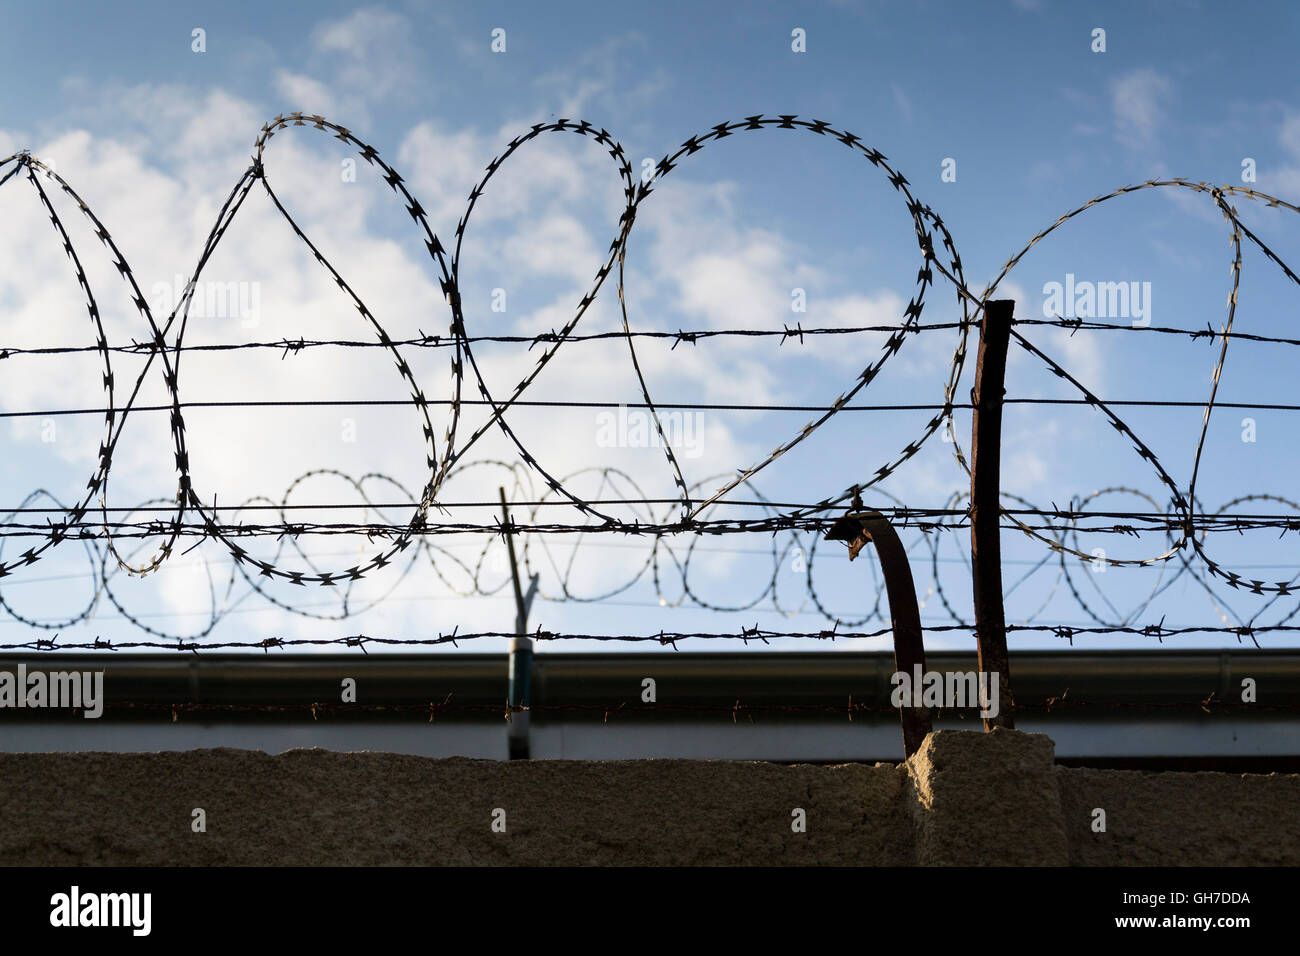 Prison wall barbed wire fence detail with blue sky in background ...